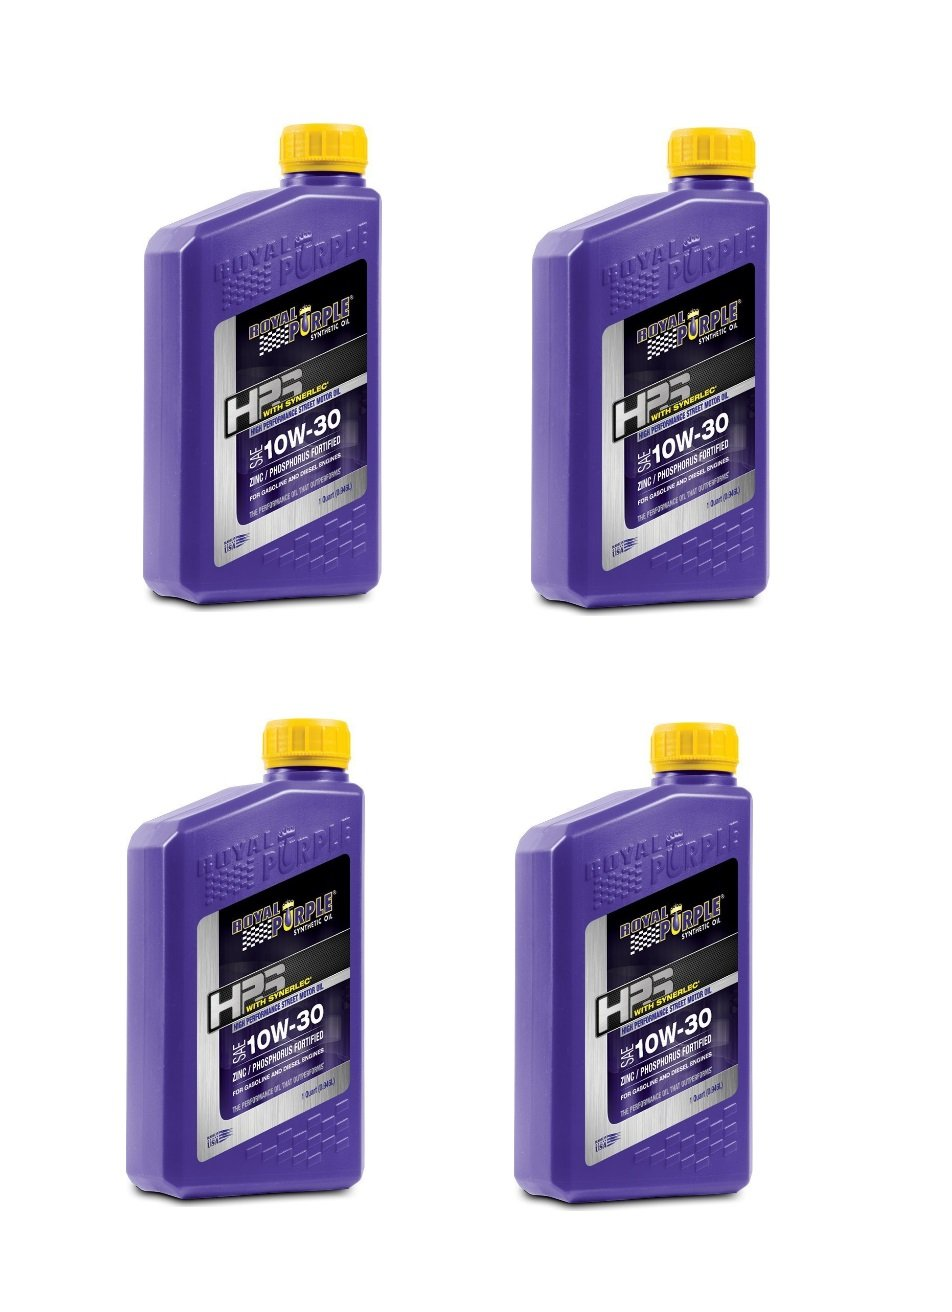 Royal Purple HPS 10W30 Synthetic Motor Oil with Synerlec Additive Technology - 1 qt. (Case of 4)